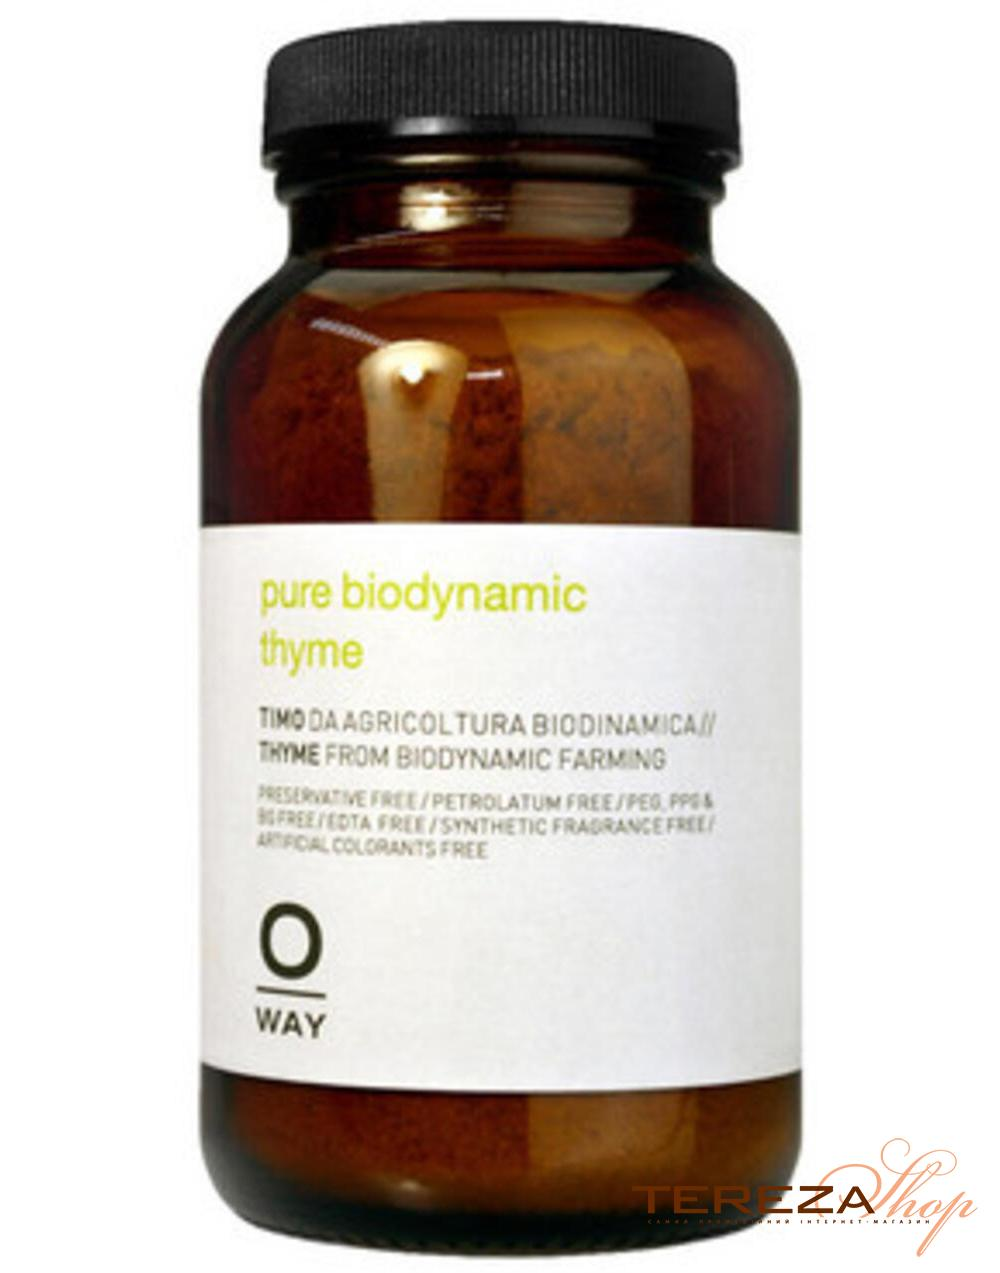 PURIFYING PURE BIODYNAMIC THYME OWAY | Tereza Shop